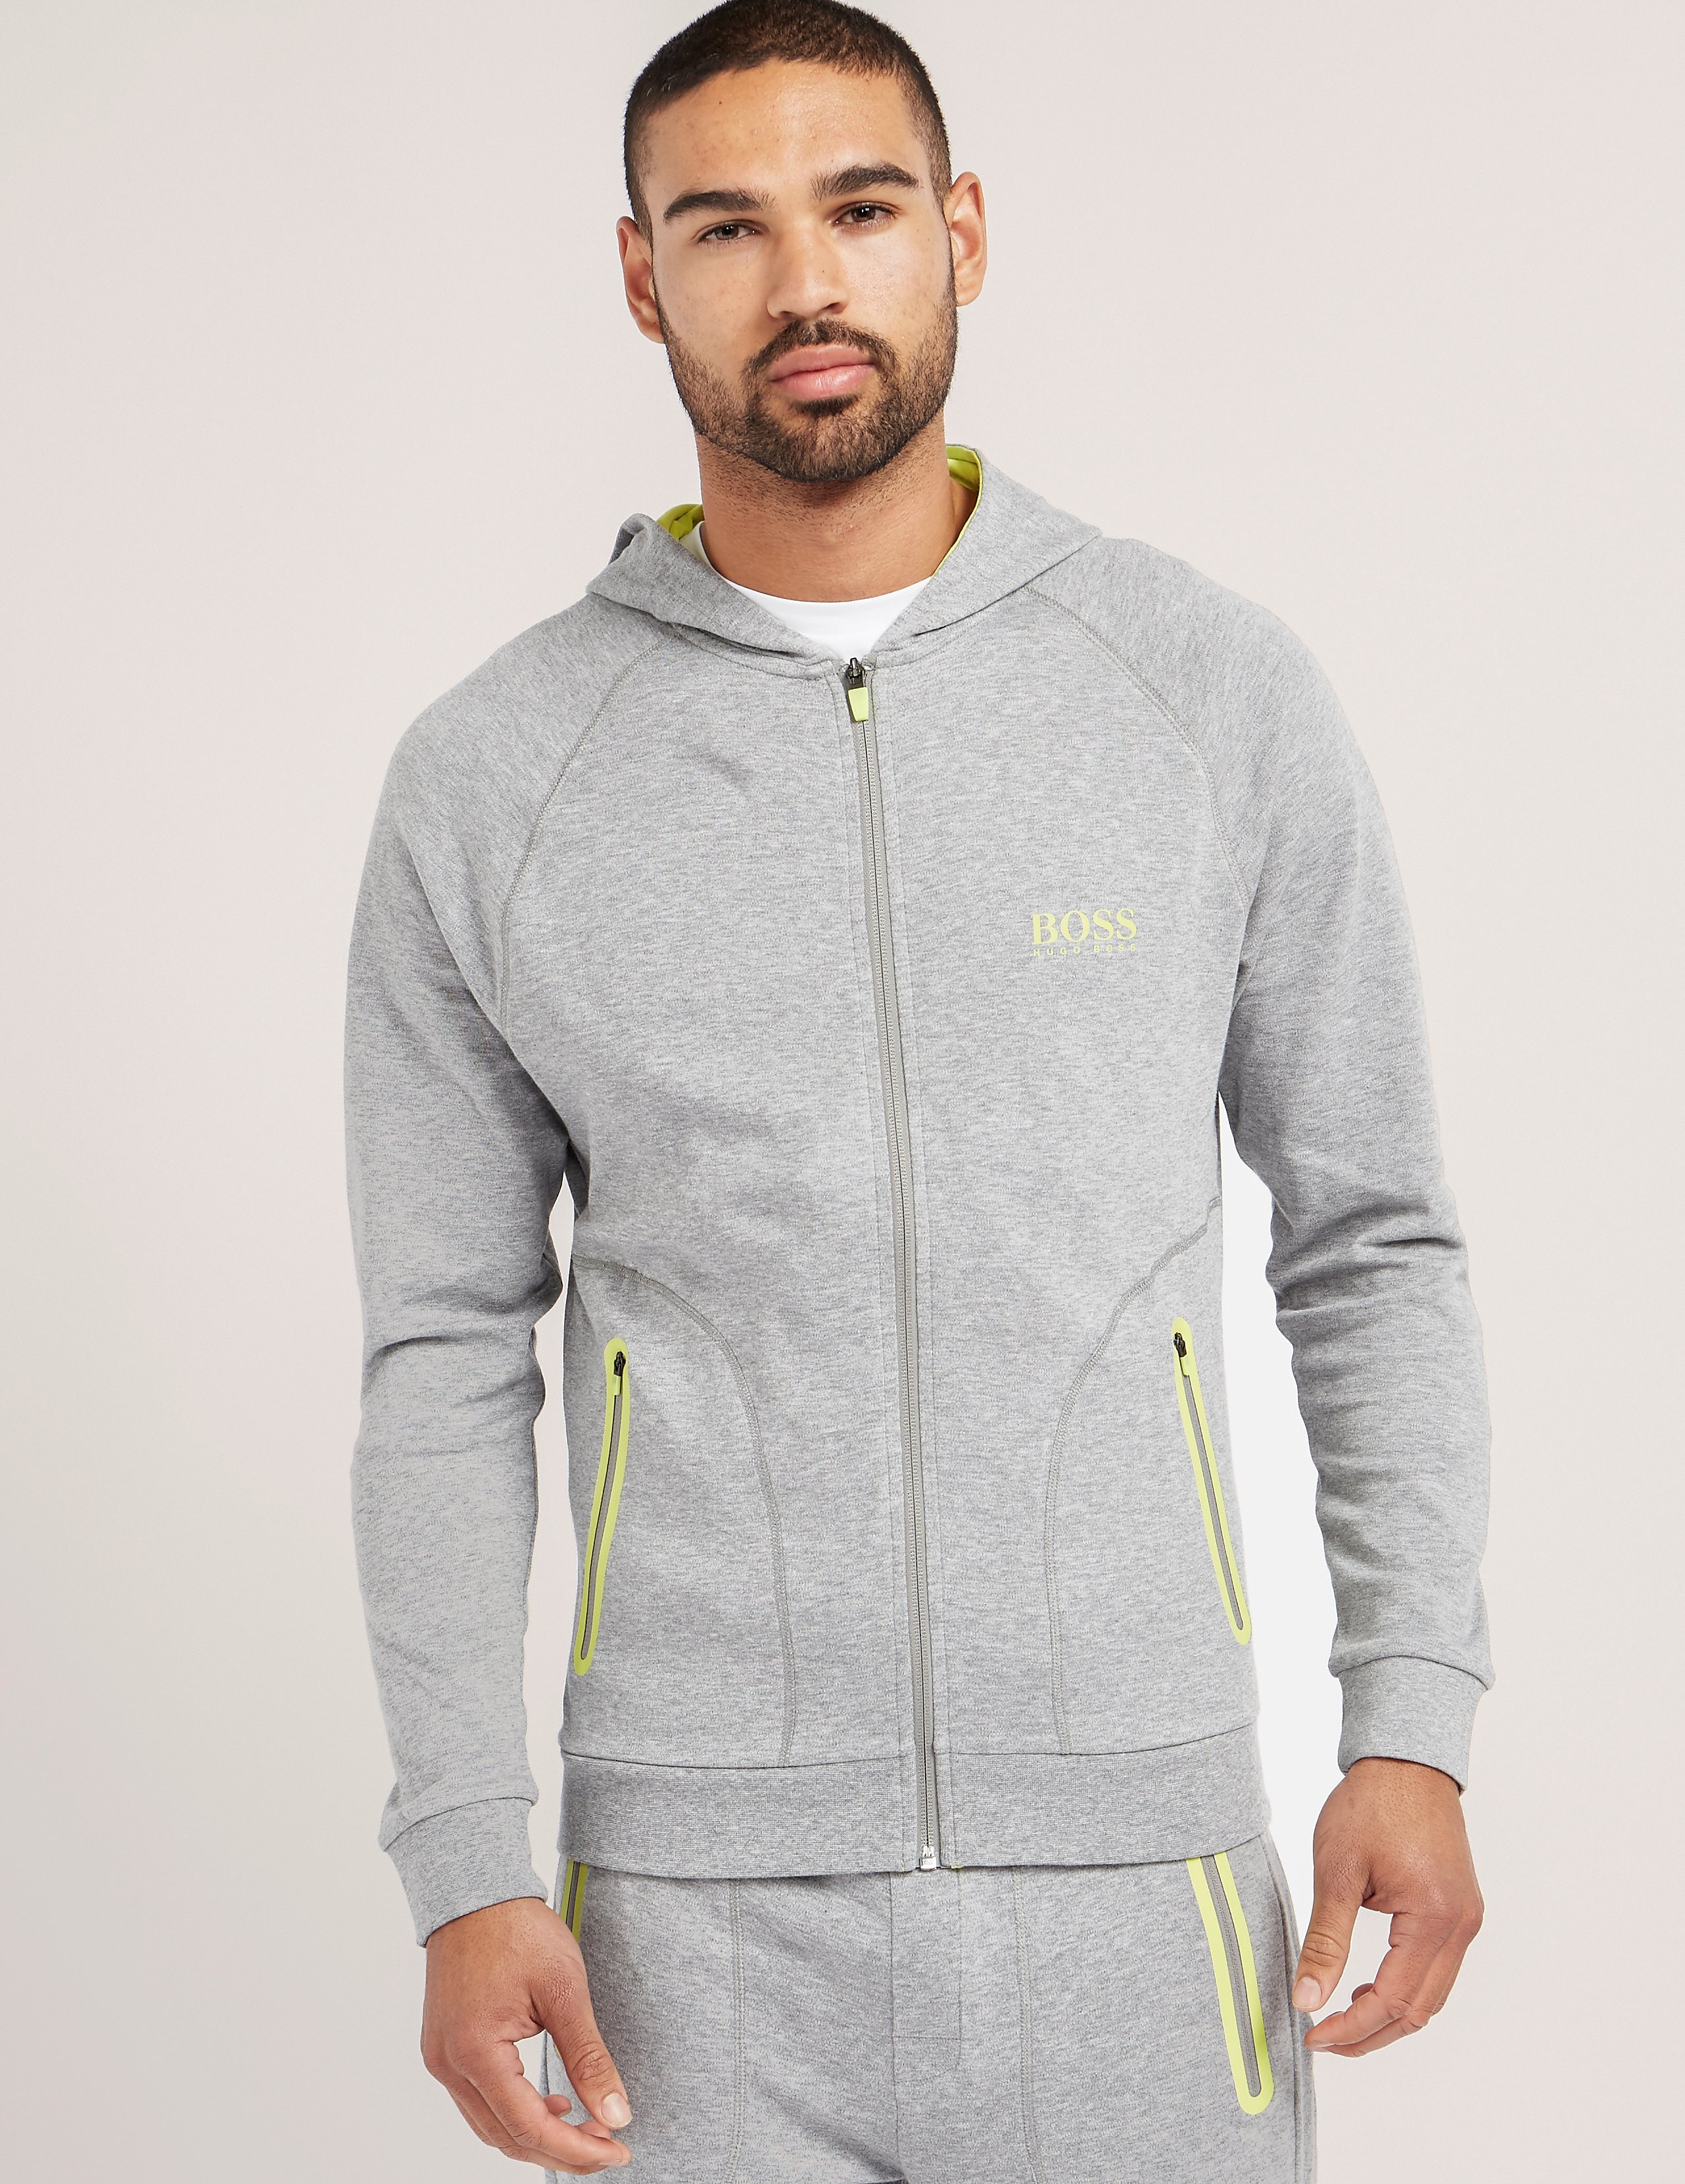 BOSS Contemporary Hoody